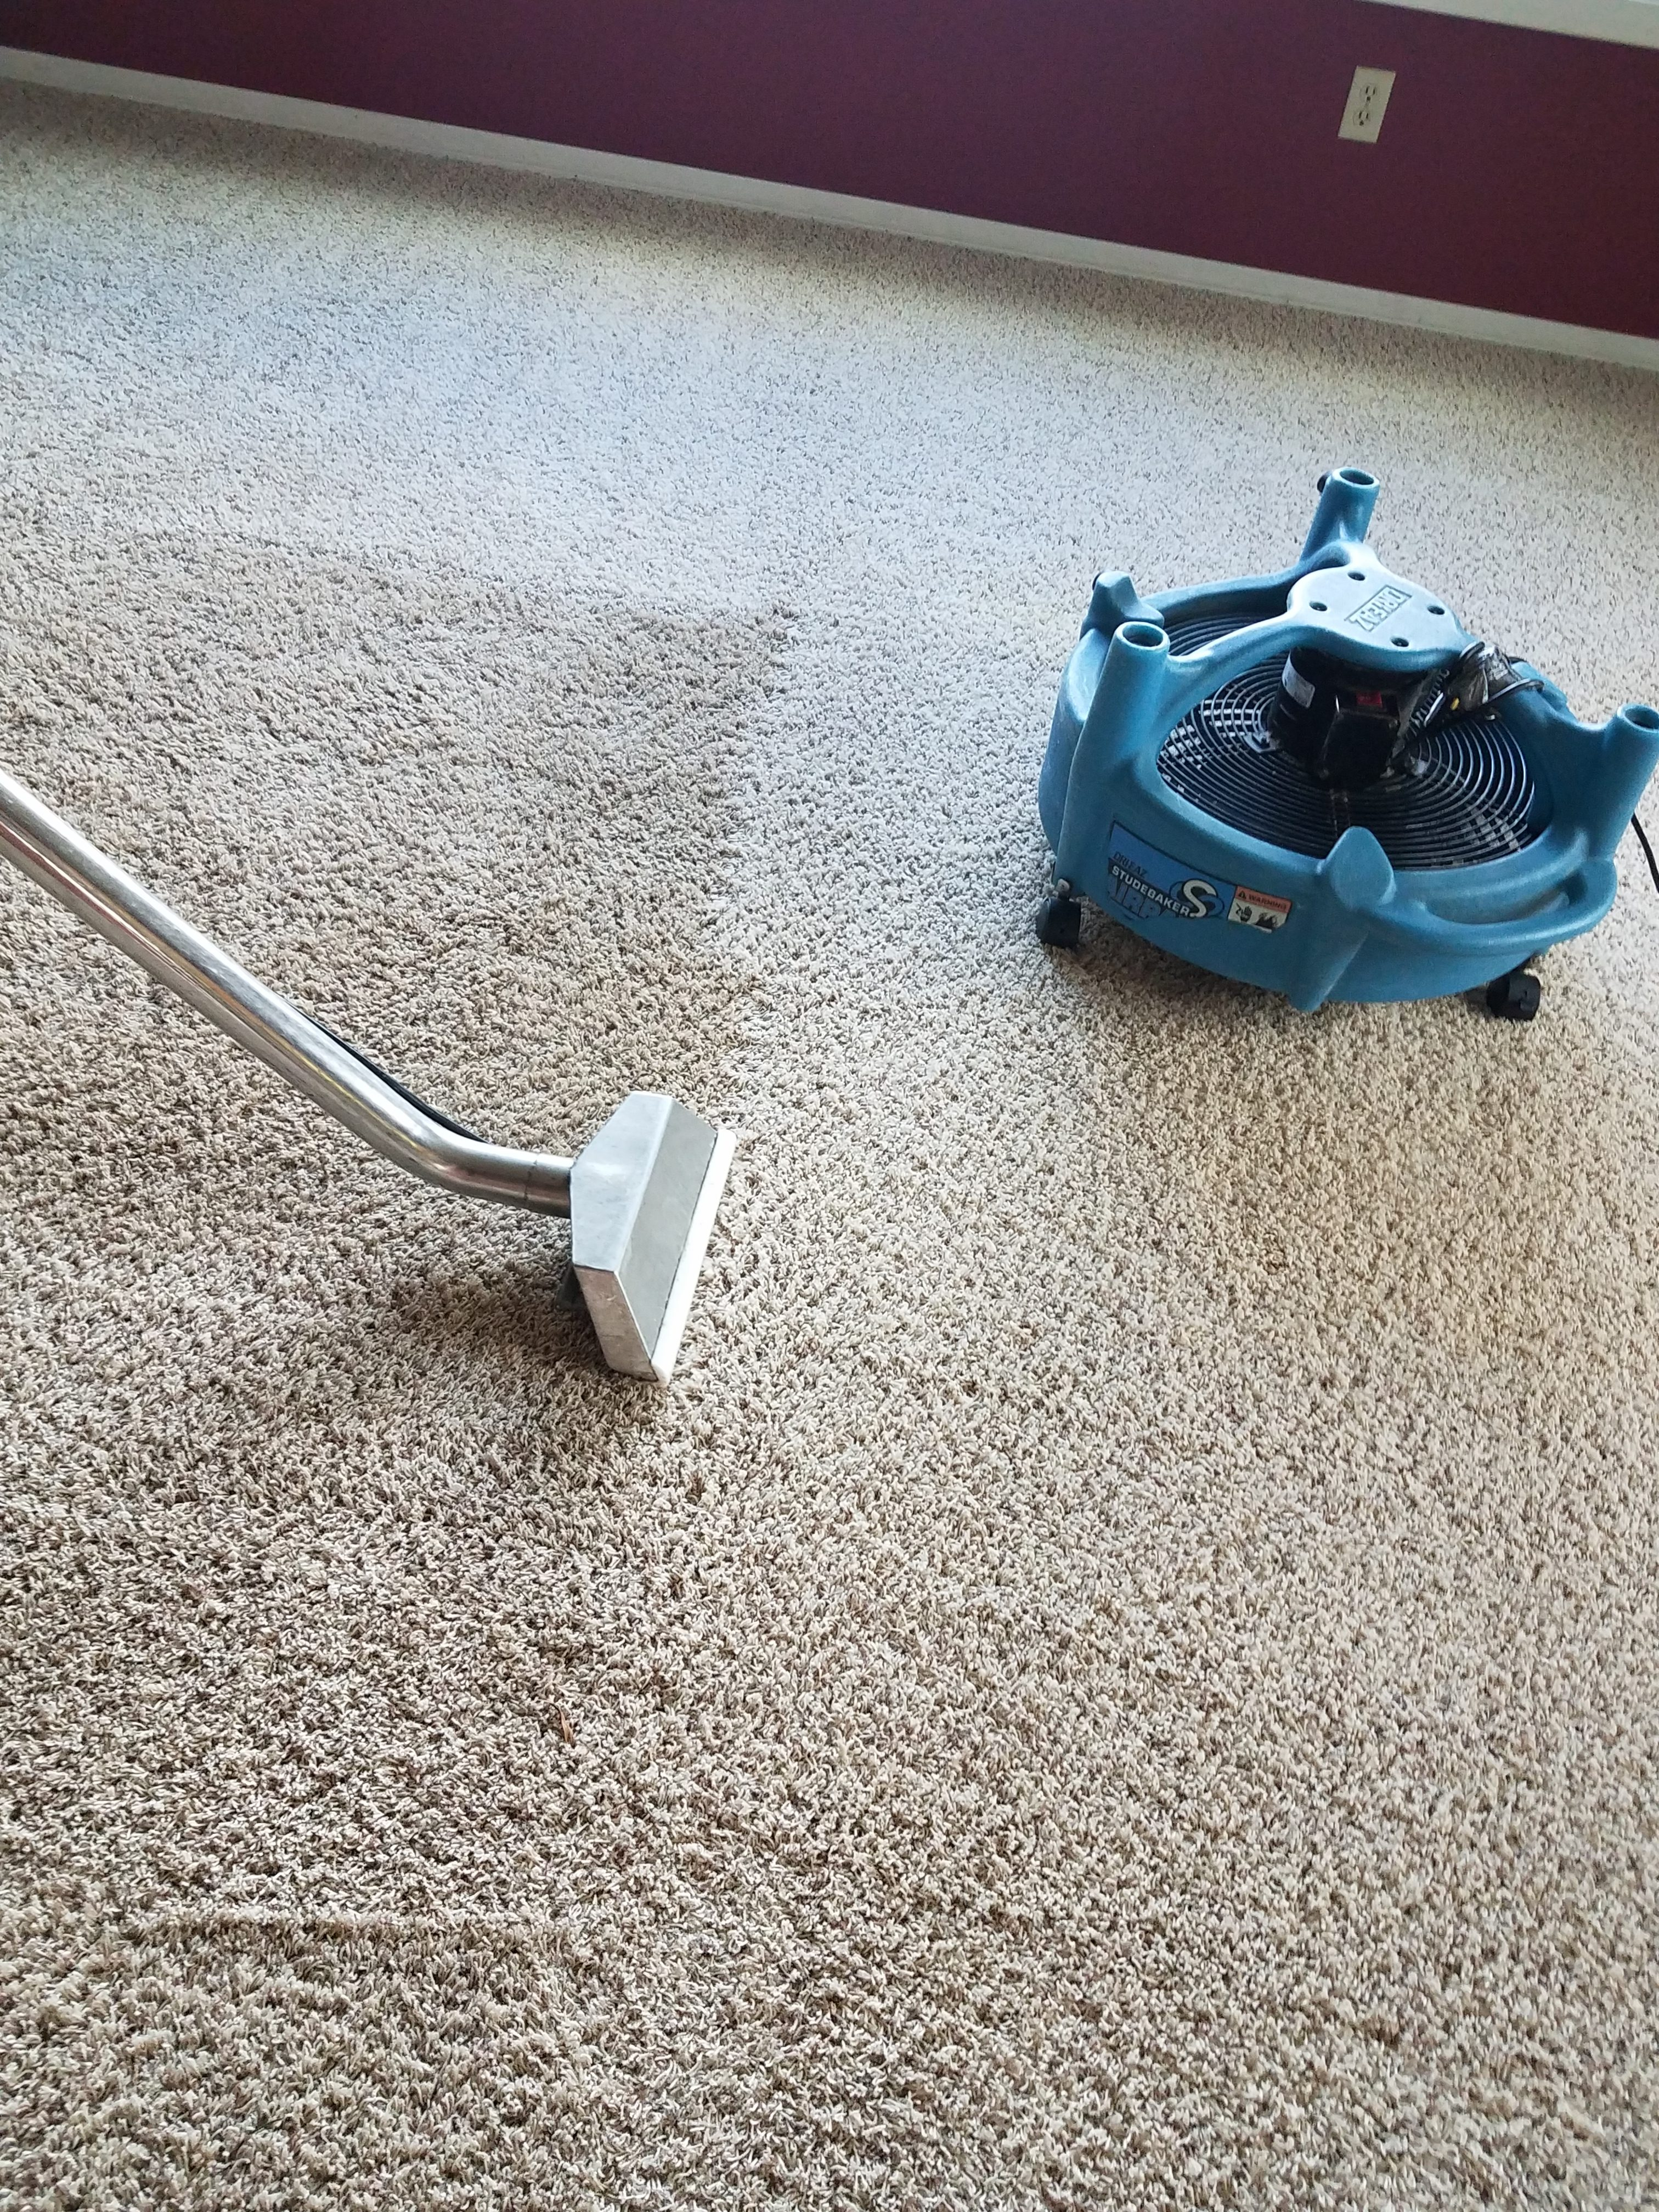 Worst carpet cleaning